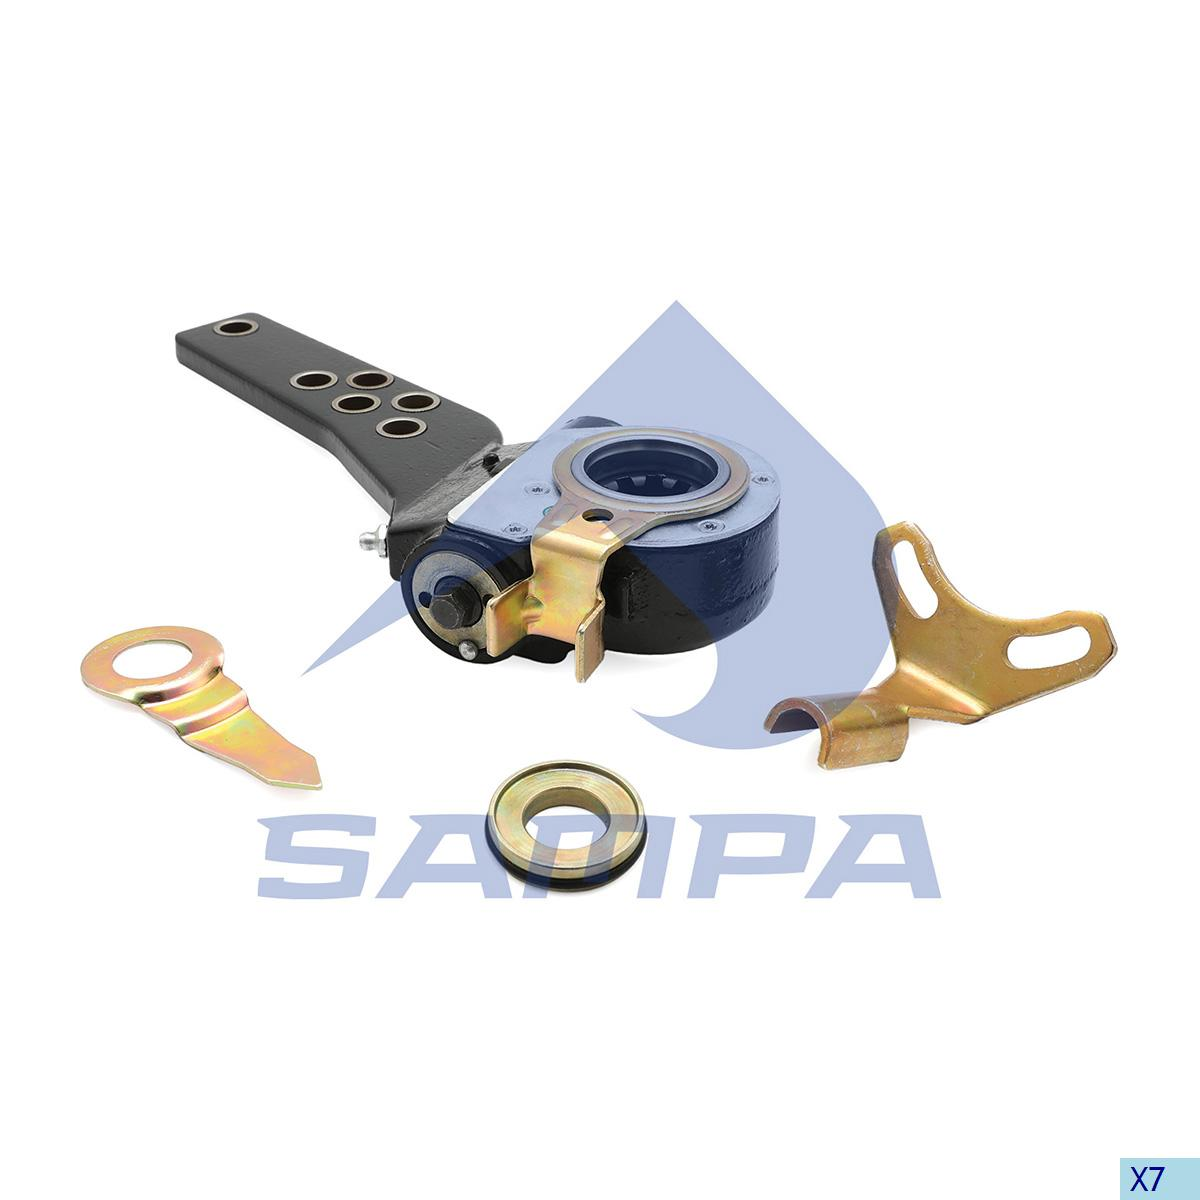 Brake Slack Adjuster, Bergische Achsen, Brake